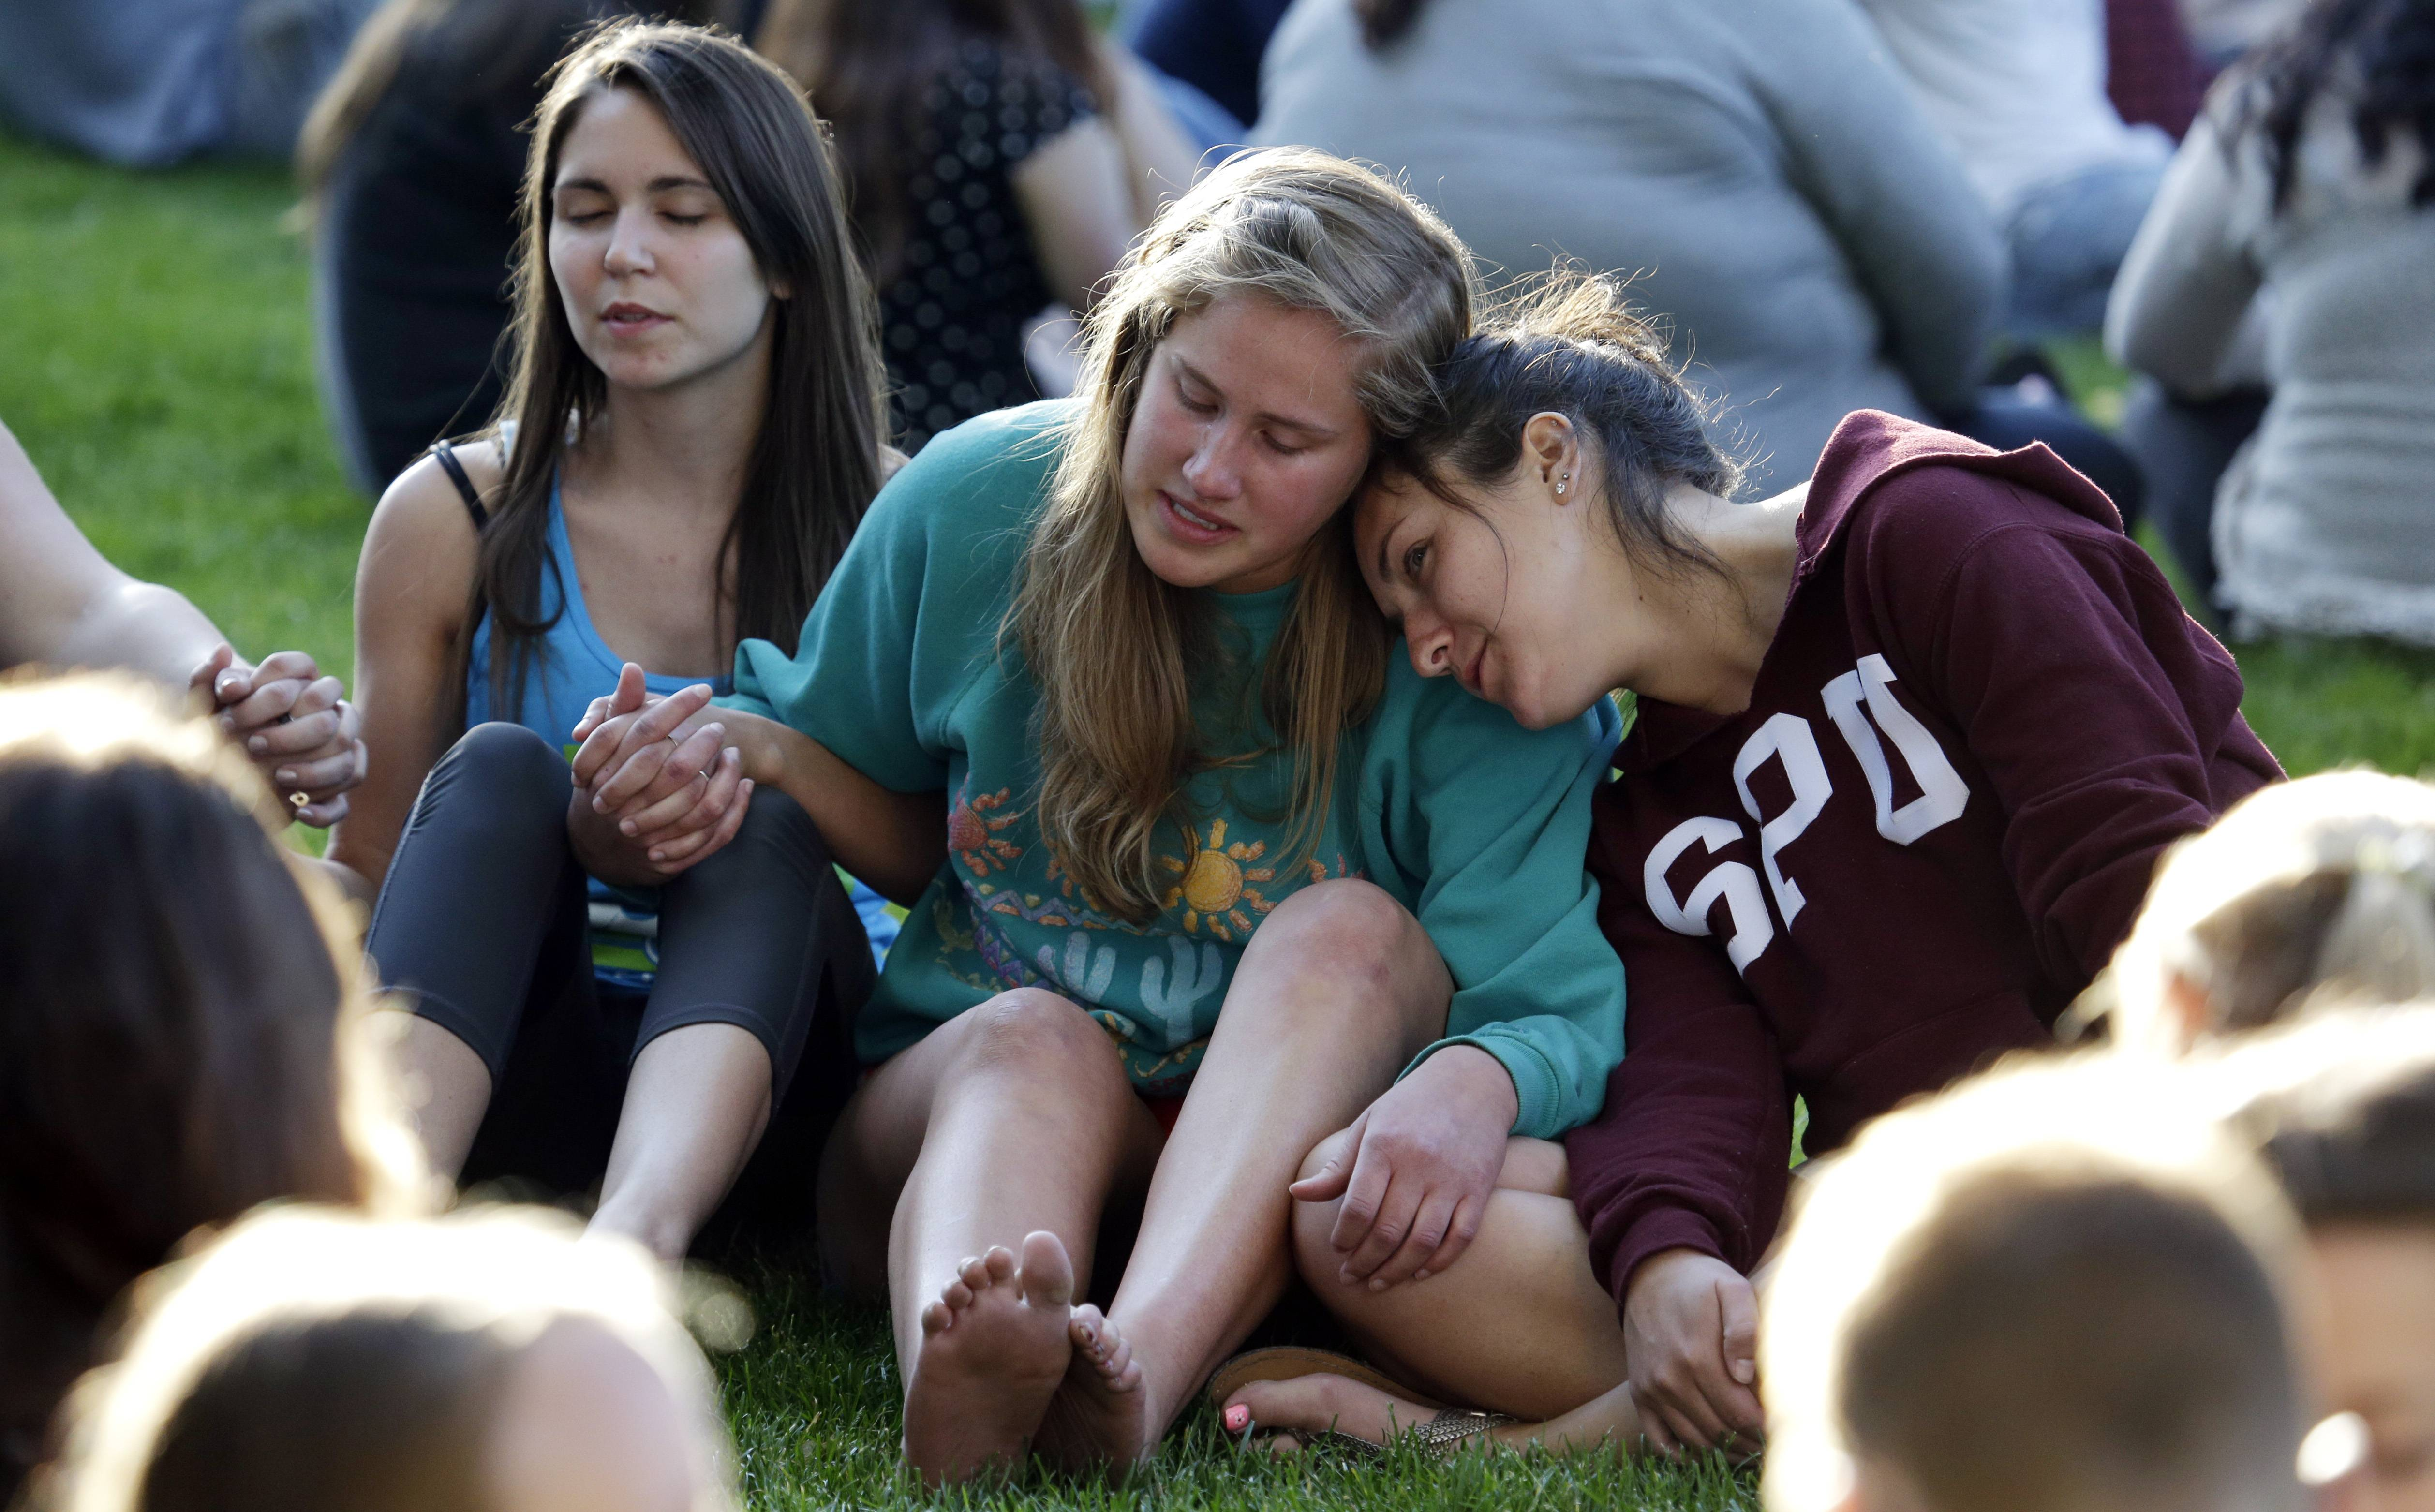 Students from Seattle Pacific University gather outside in a spontaneous prayer circle after a church service was full, after a shooting on the campus.